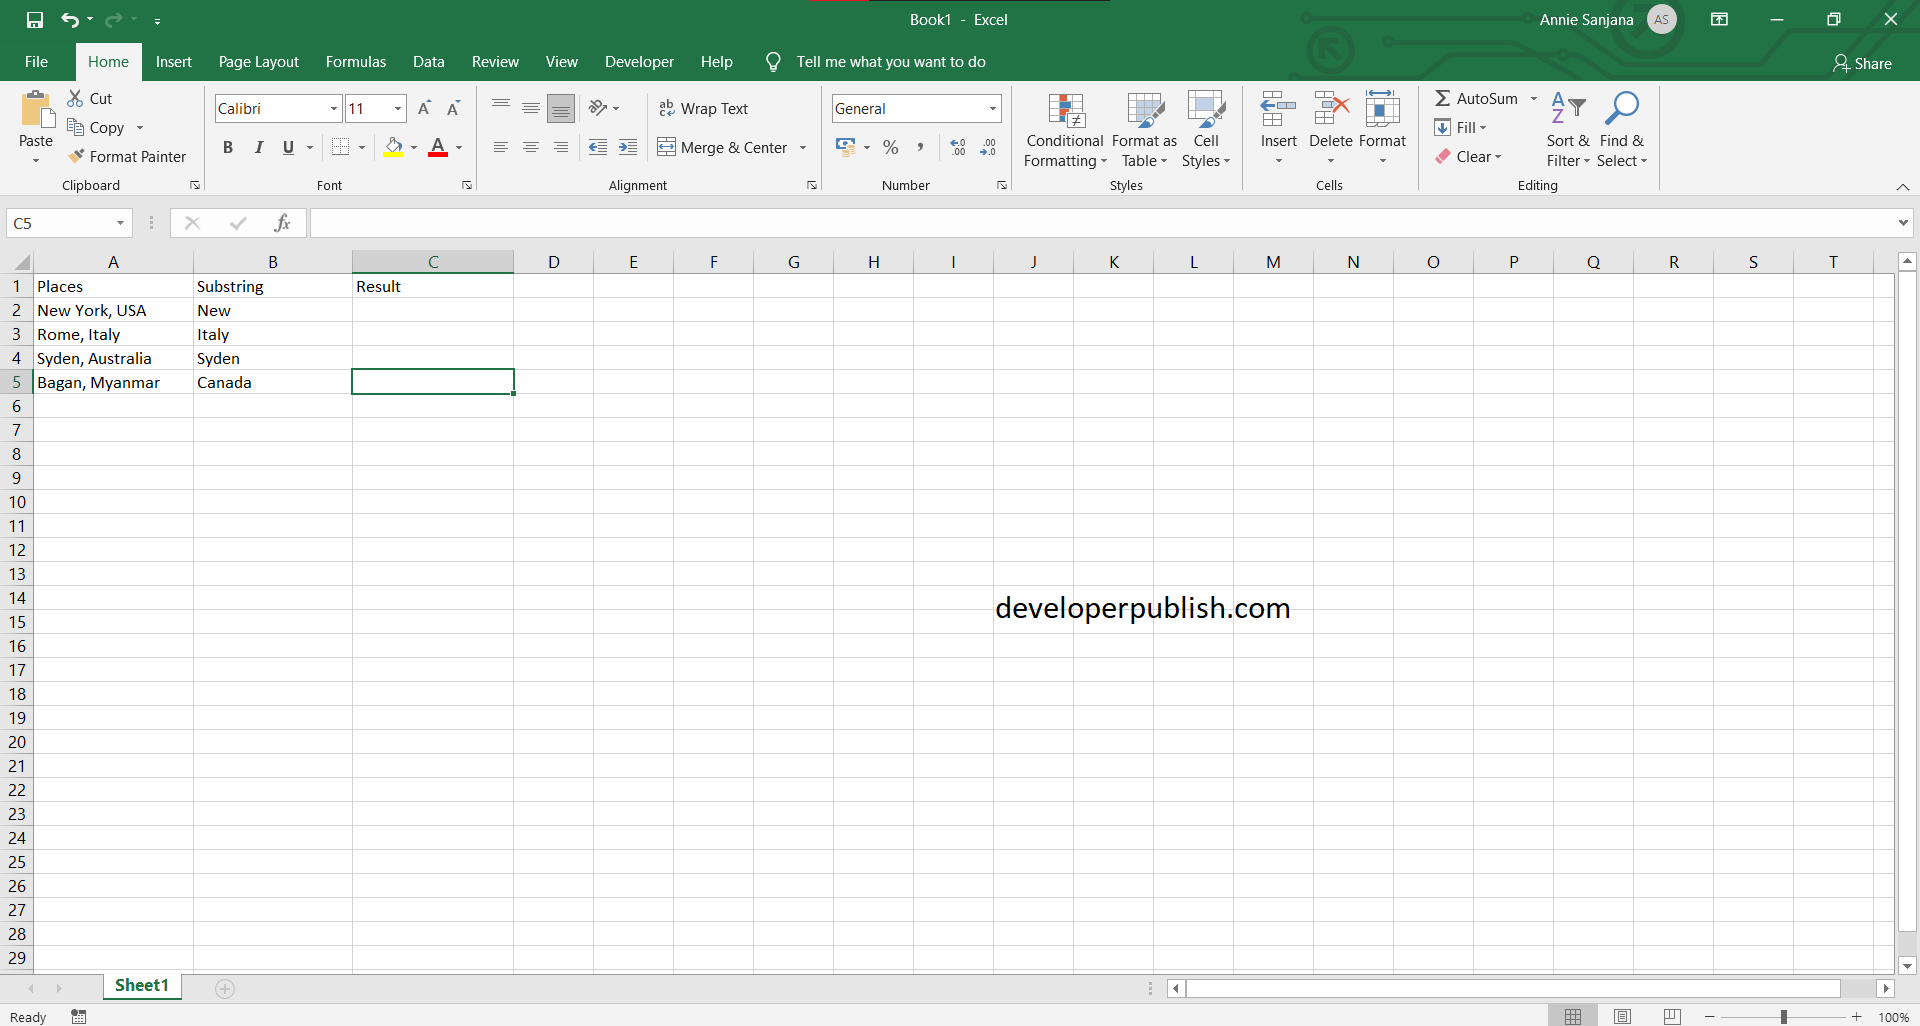 How to Find Cell that Contains Specific Text in Excel